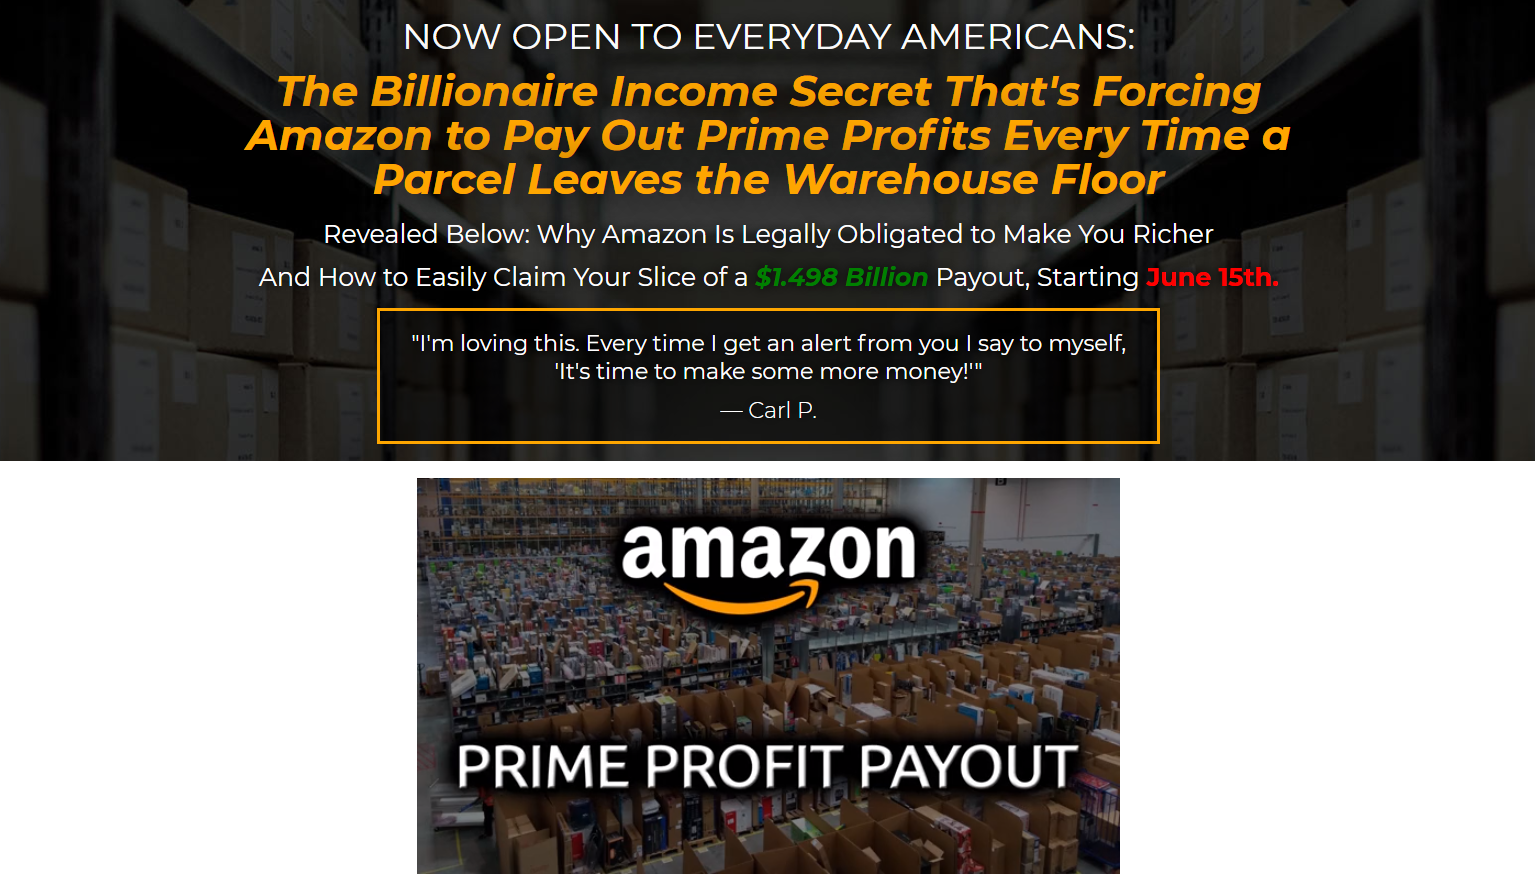 Prime Profit Payout video